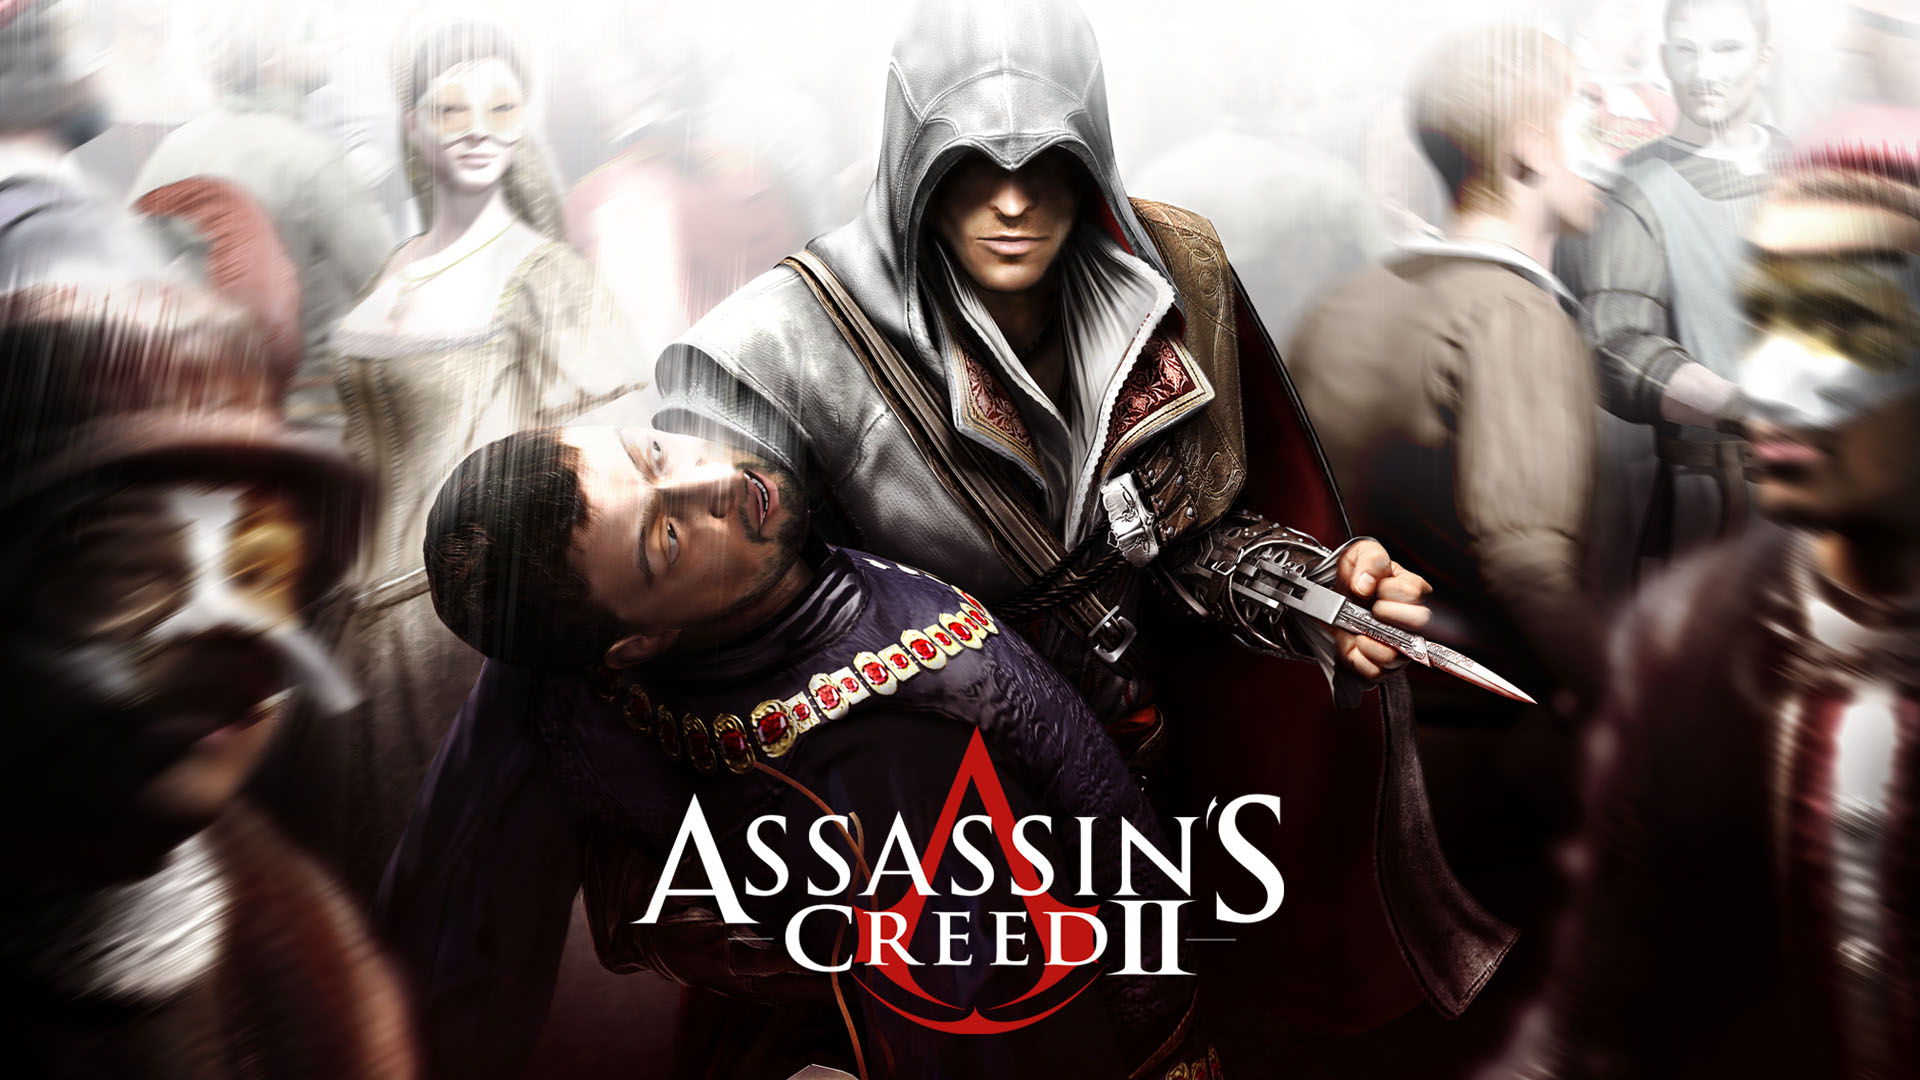 Assassin's creed II [Warranty 5 years] + Gift 2019